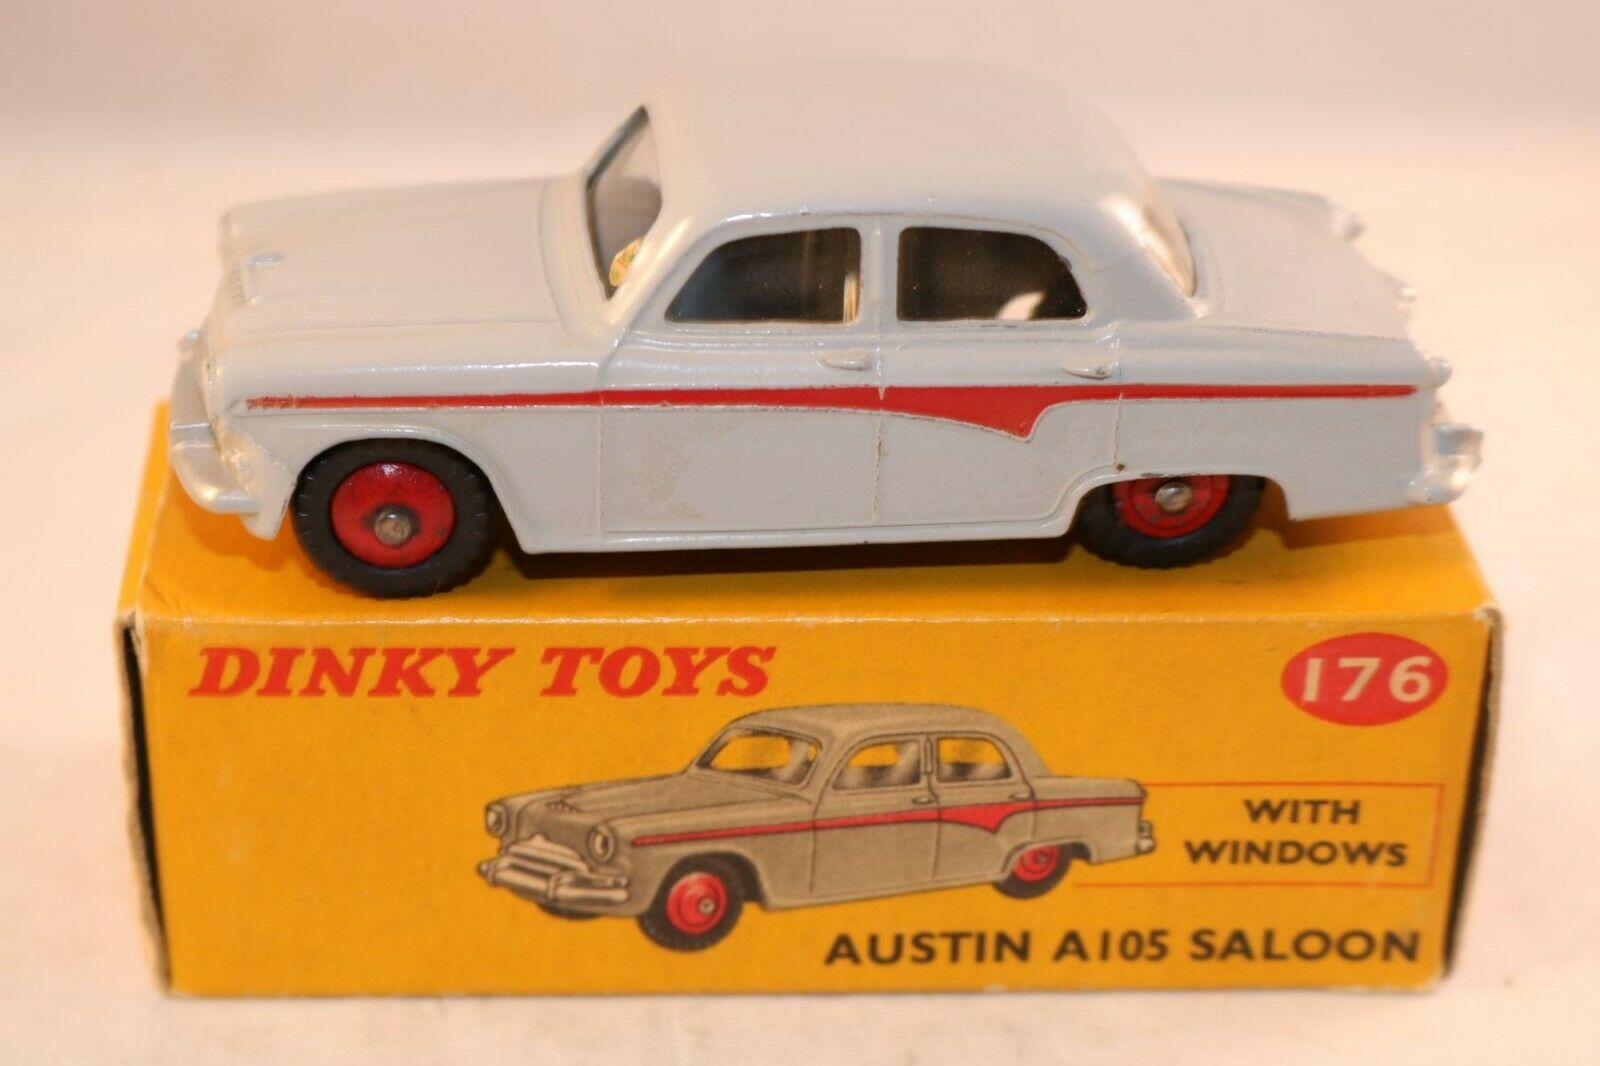 Dinky Toys 176 Austin A105 Saloon very near mint in box all original condition